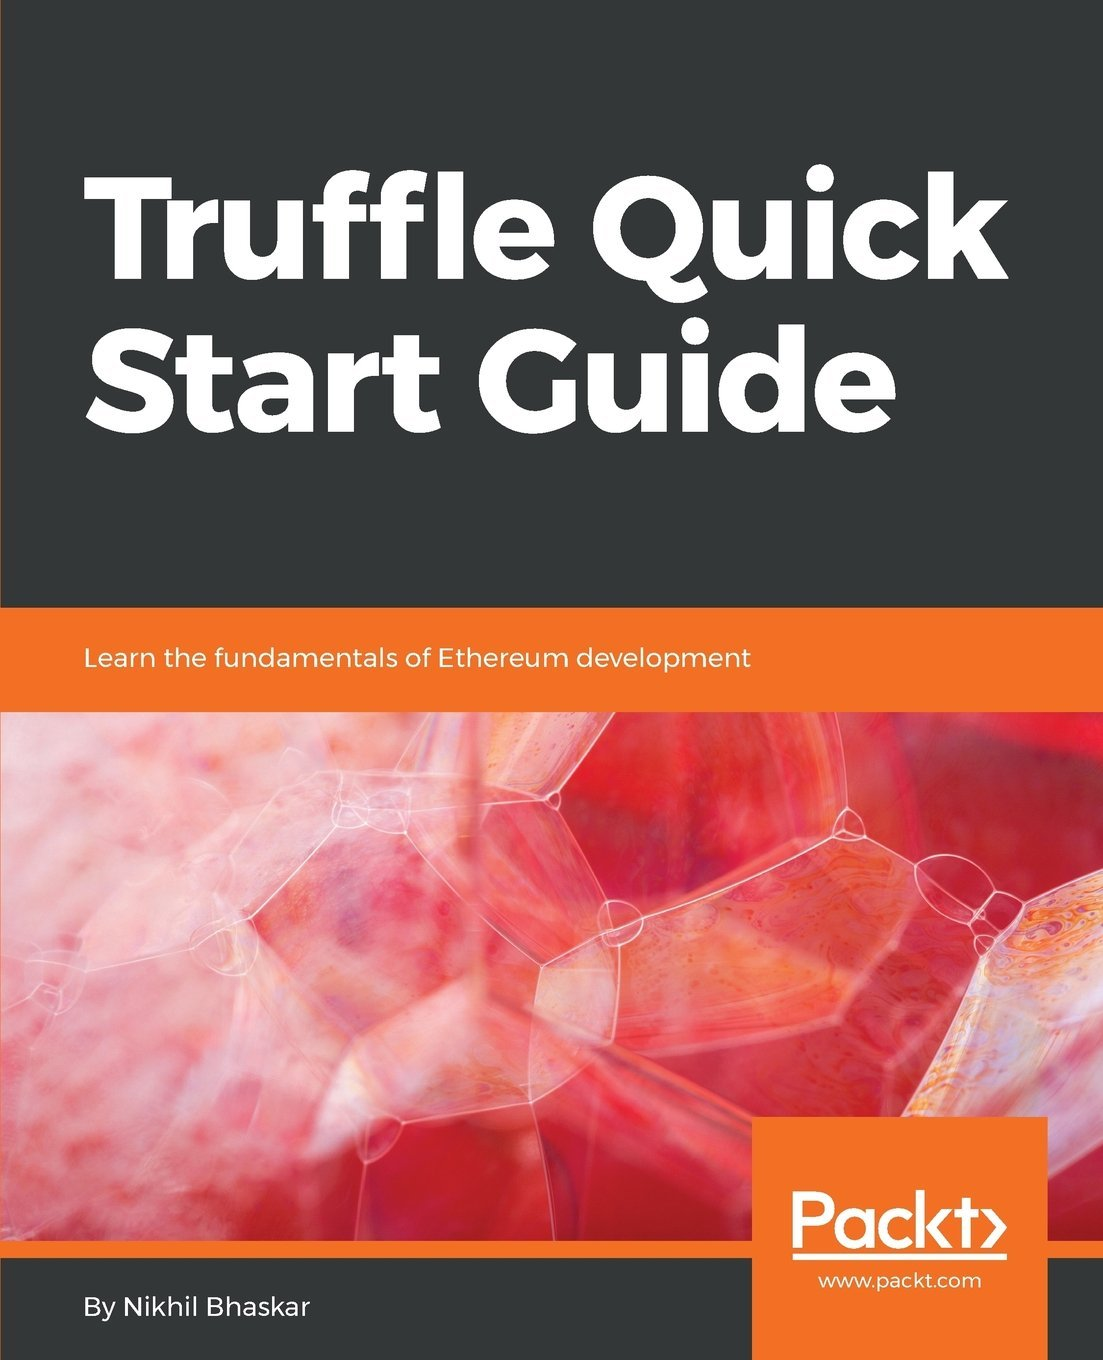 Download Truffle Quick Start Guide: Learn the fundamentals of Ethereum development ebook